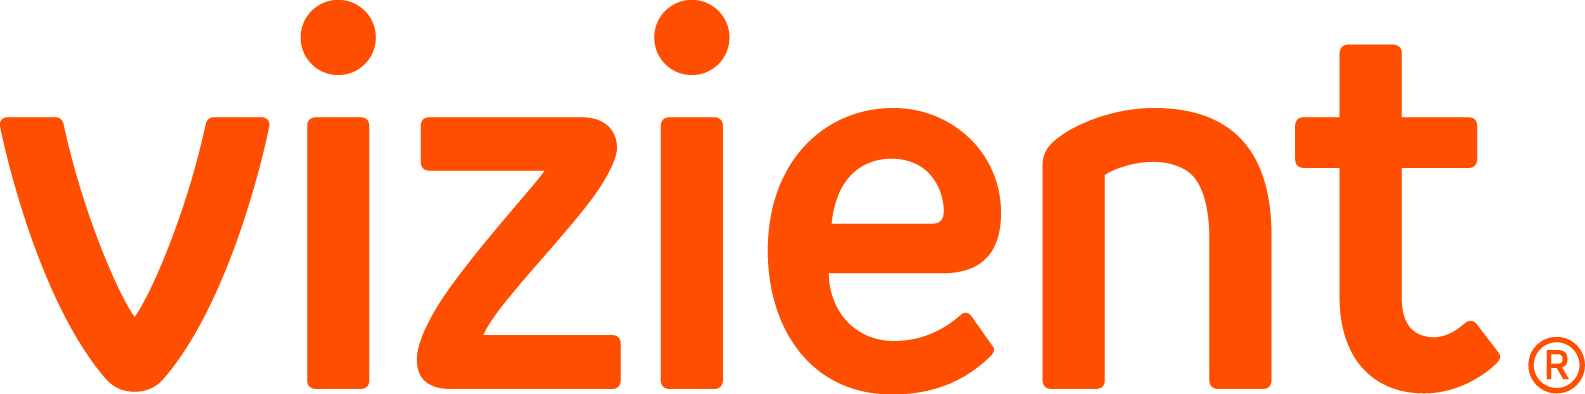 Vizient Orange Logo in JPG Format (RGB Mode)